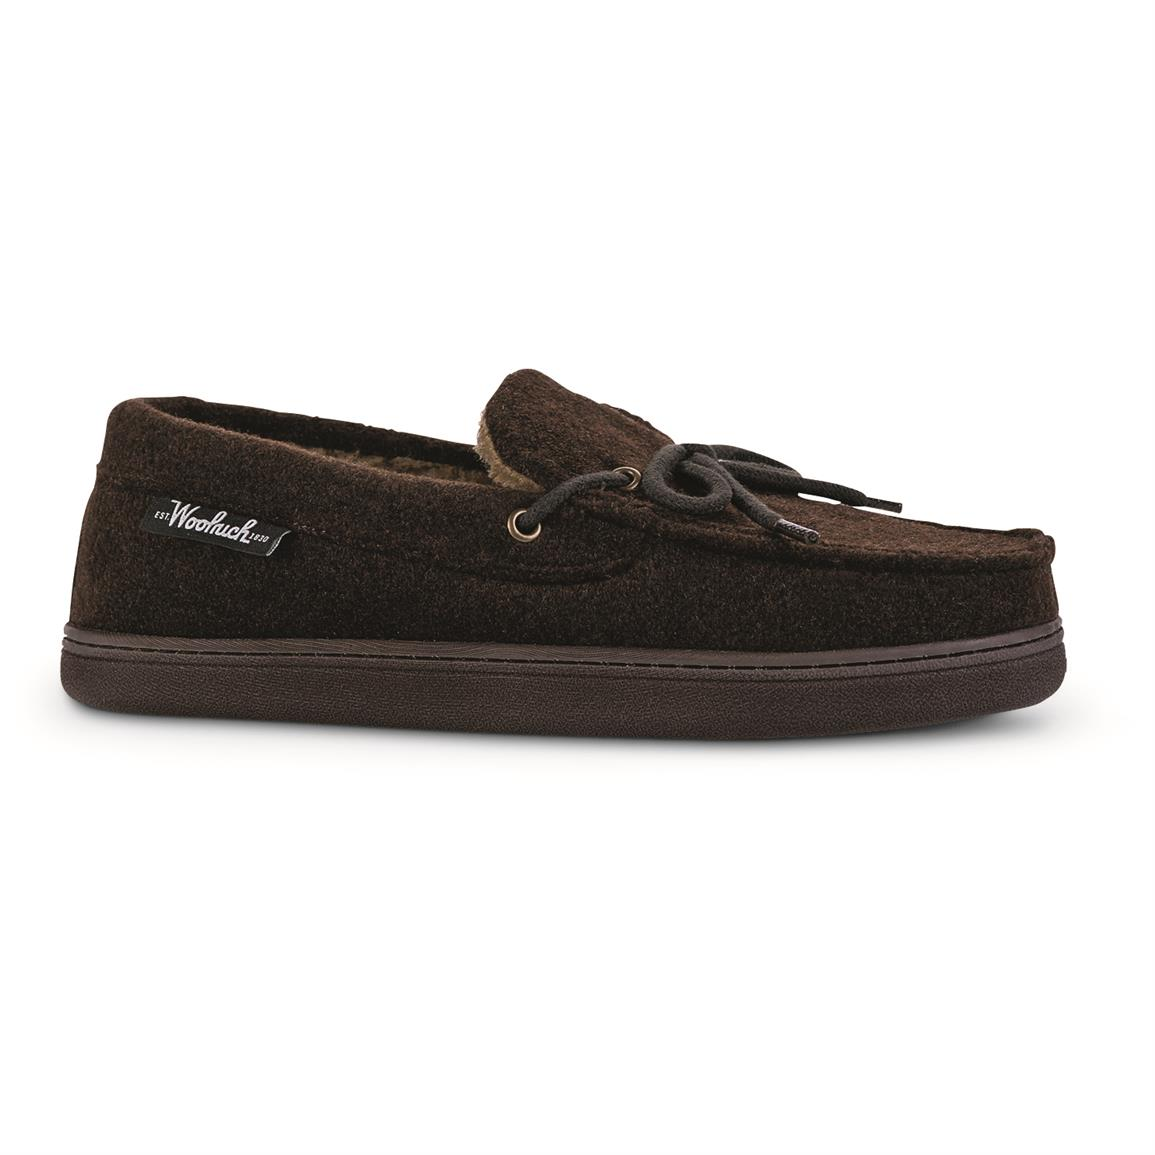 Woolrich Men's Lewisburg Moccasin Slippers, Chocolate